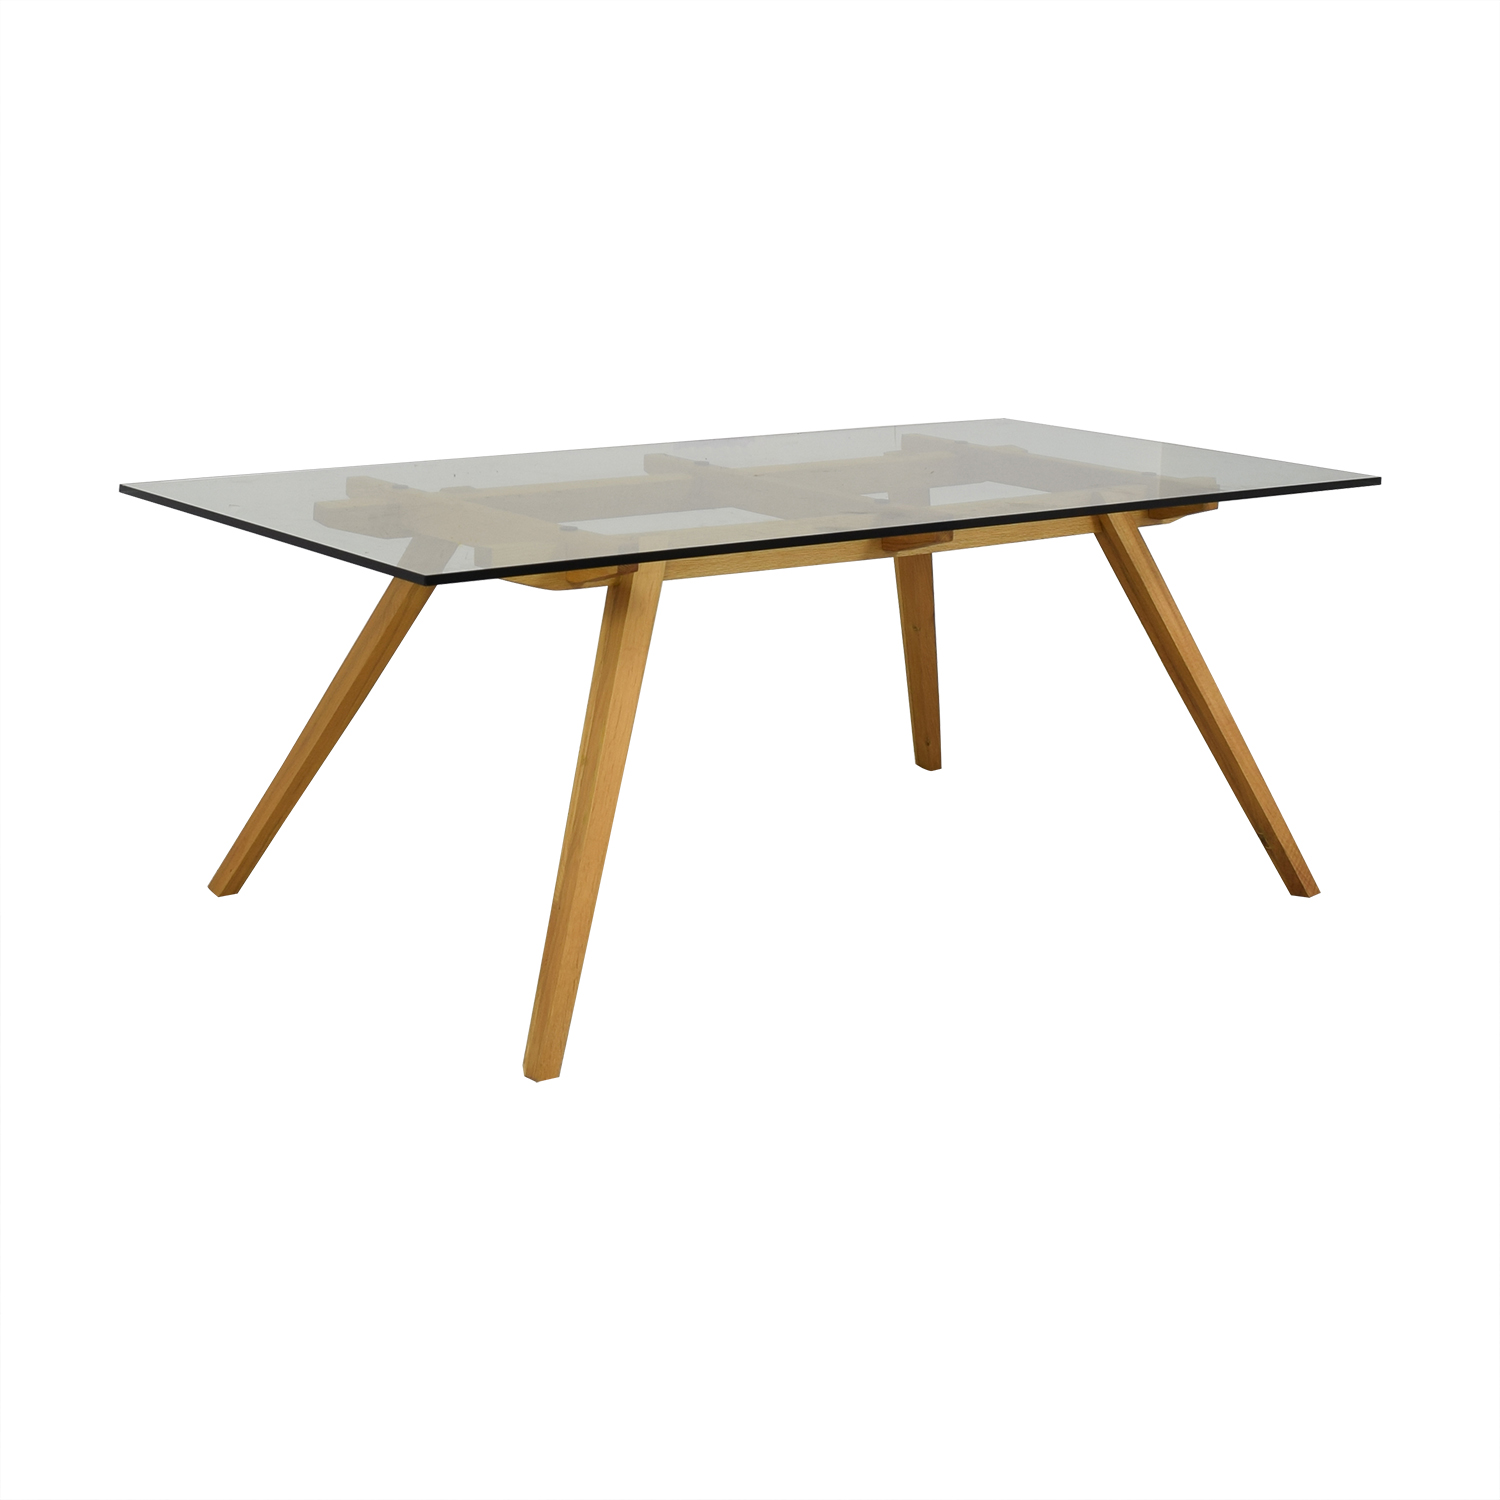 Organic Modernism Recoleta Glass and Wood Dining Table sale